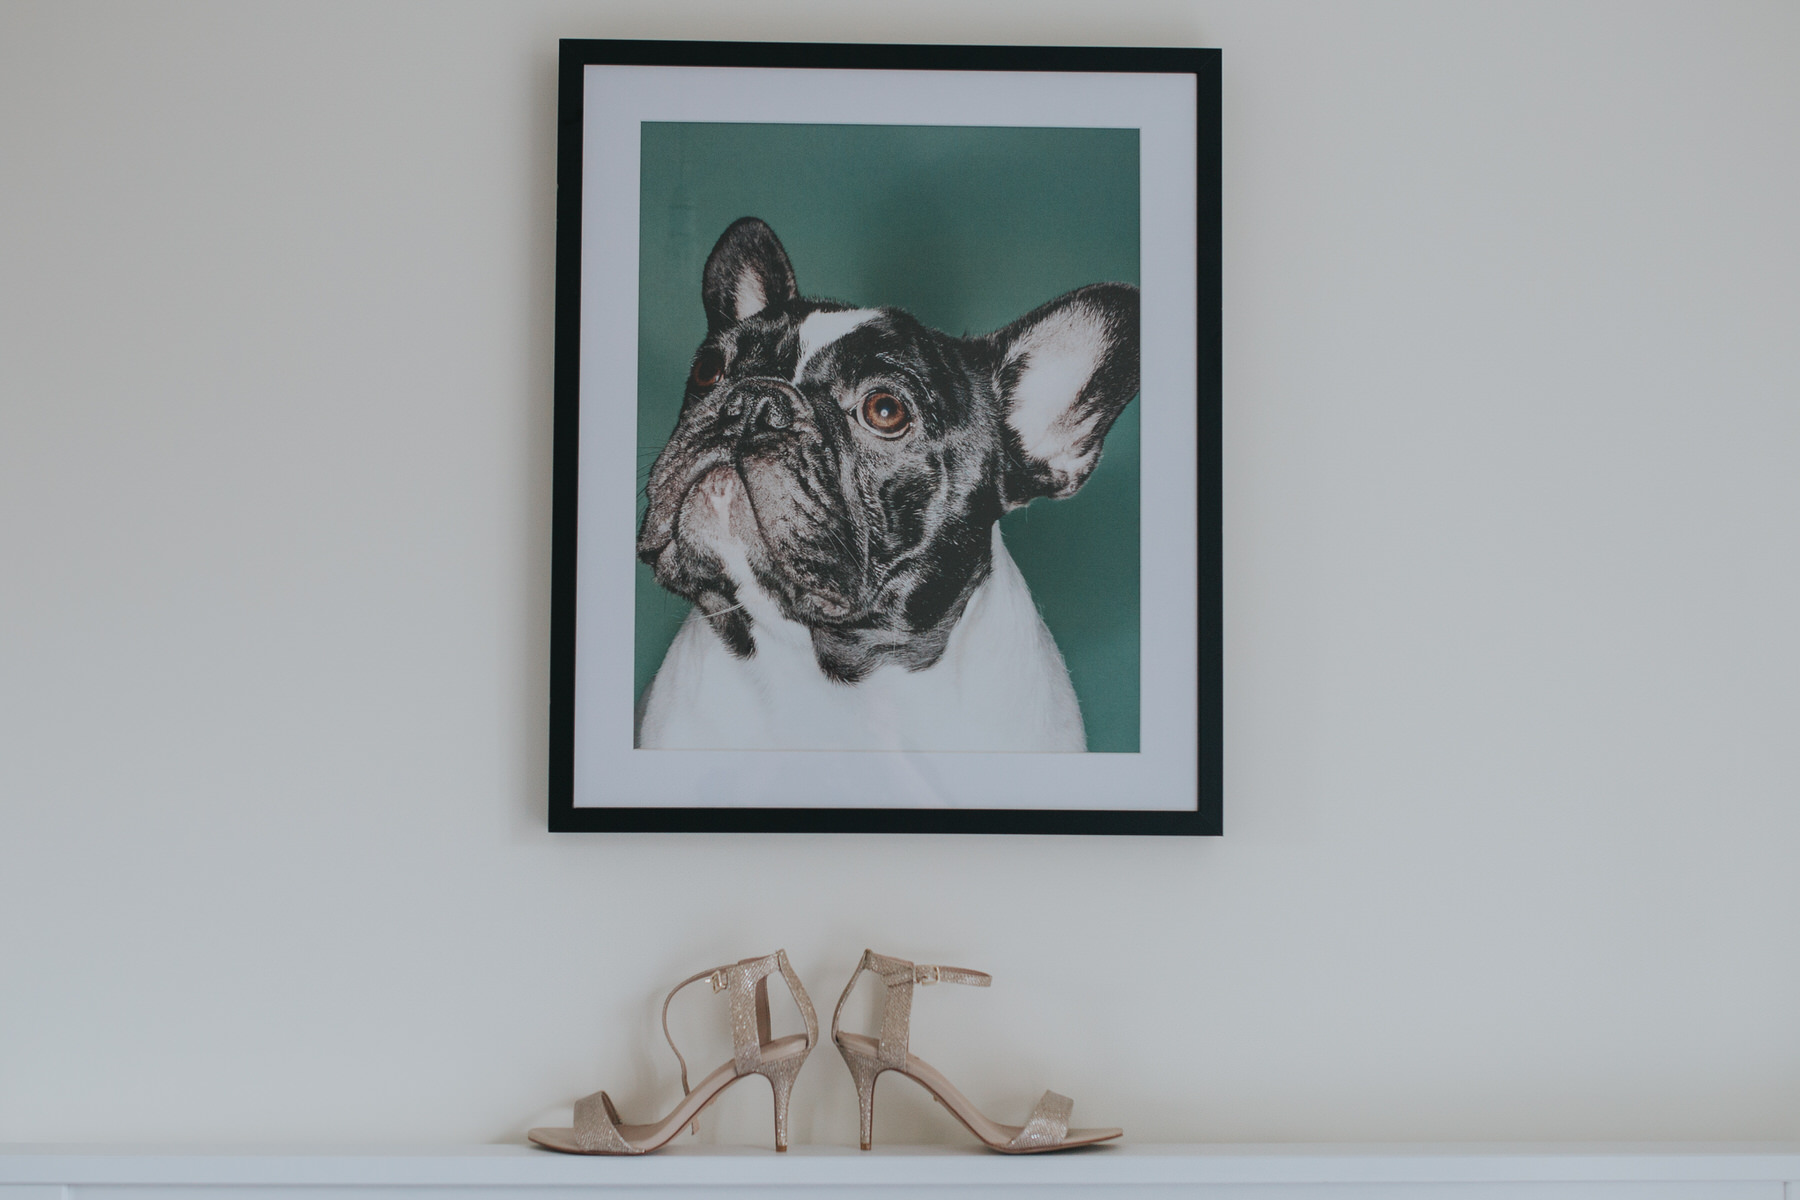 wedding sandal detail photo boston terrier painting background.jpg